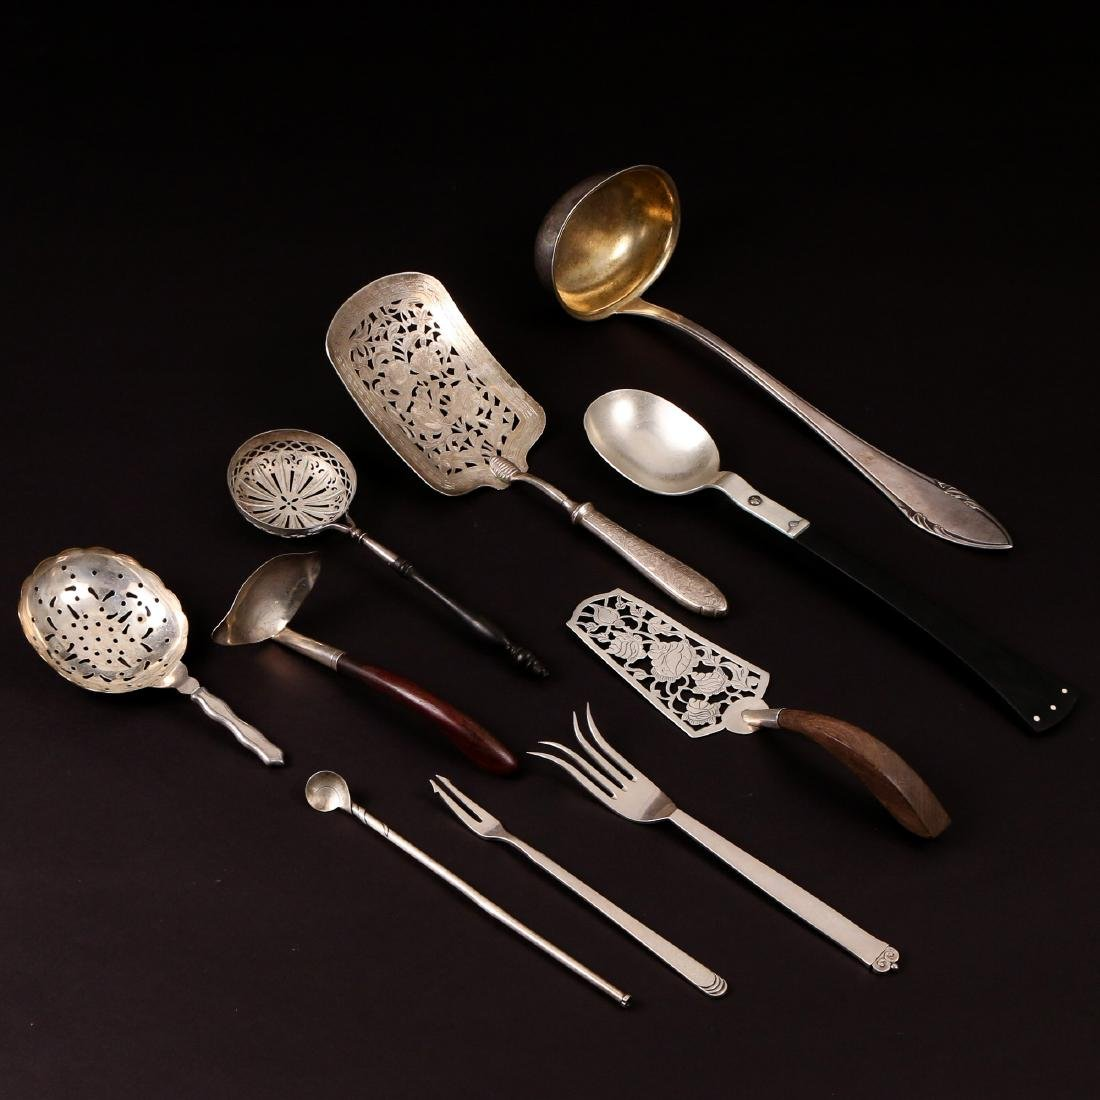 DESIGNER SILVER & OTHER SERVING PIECES